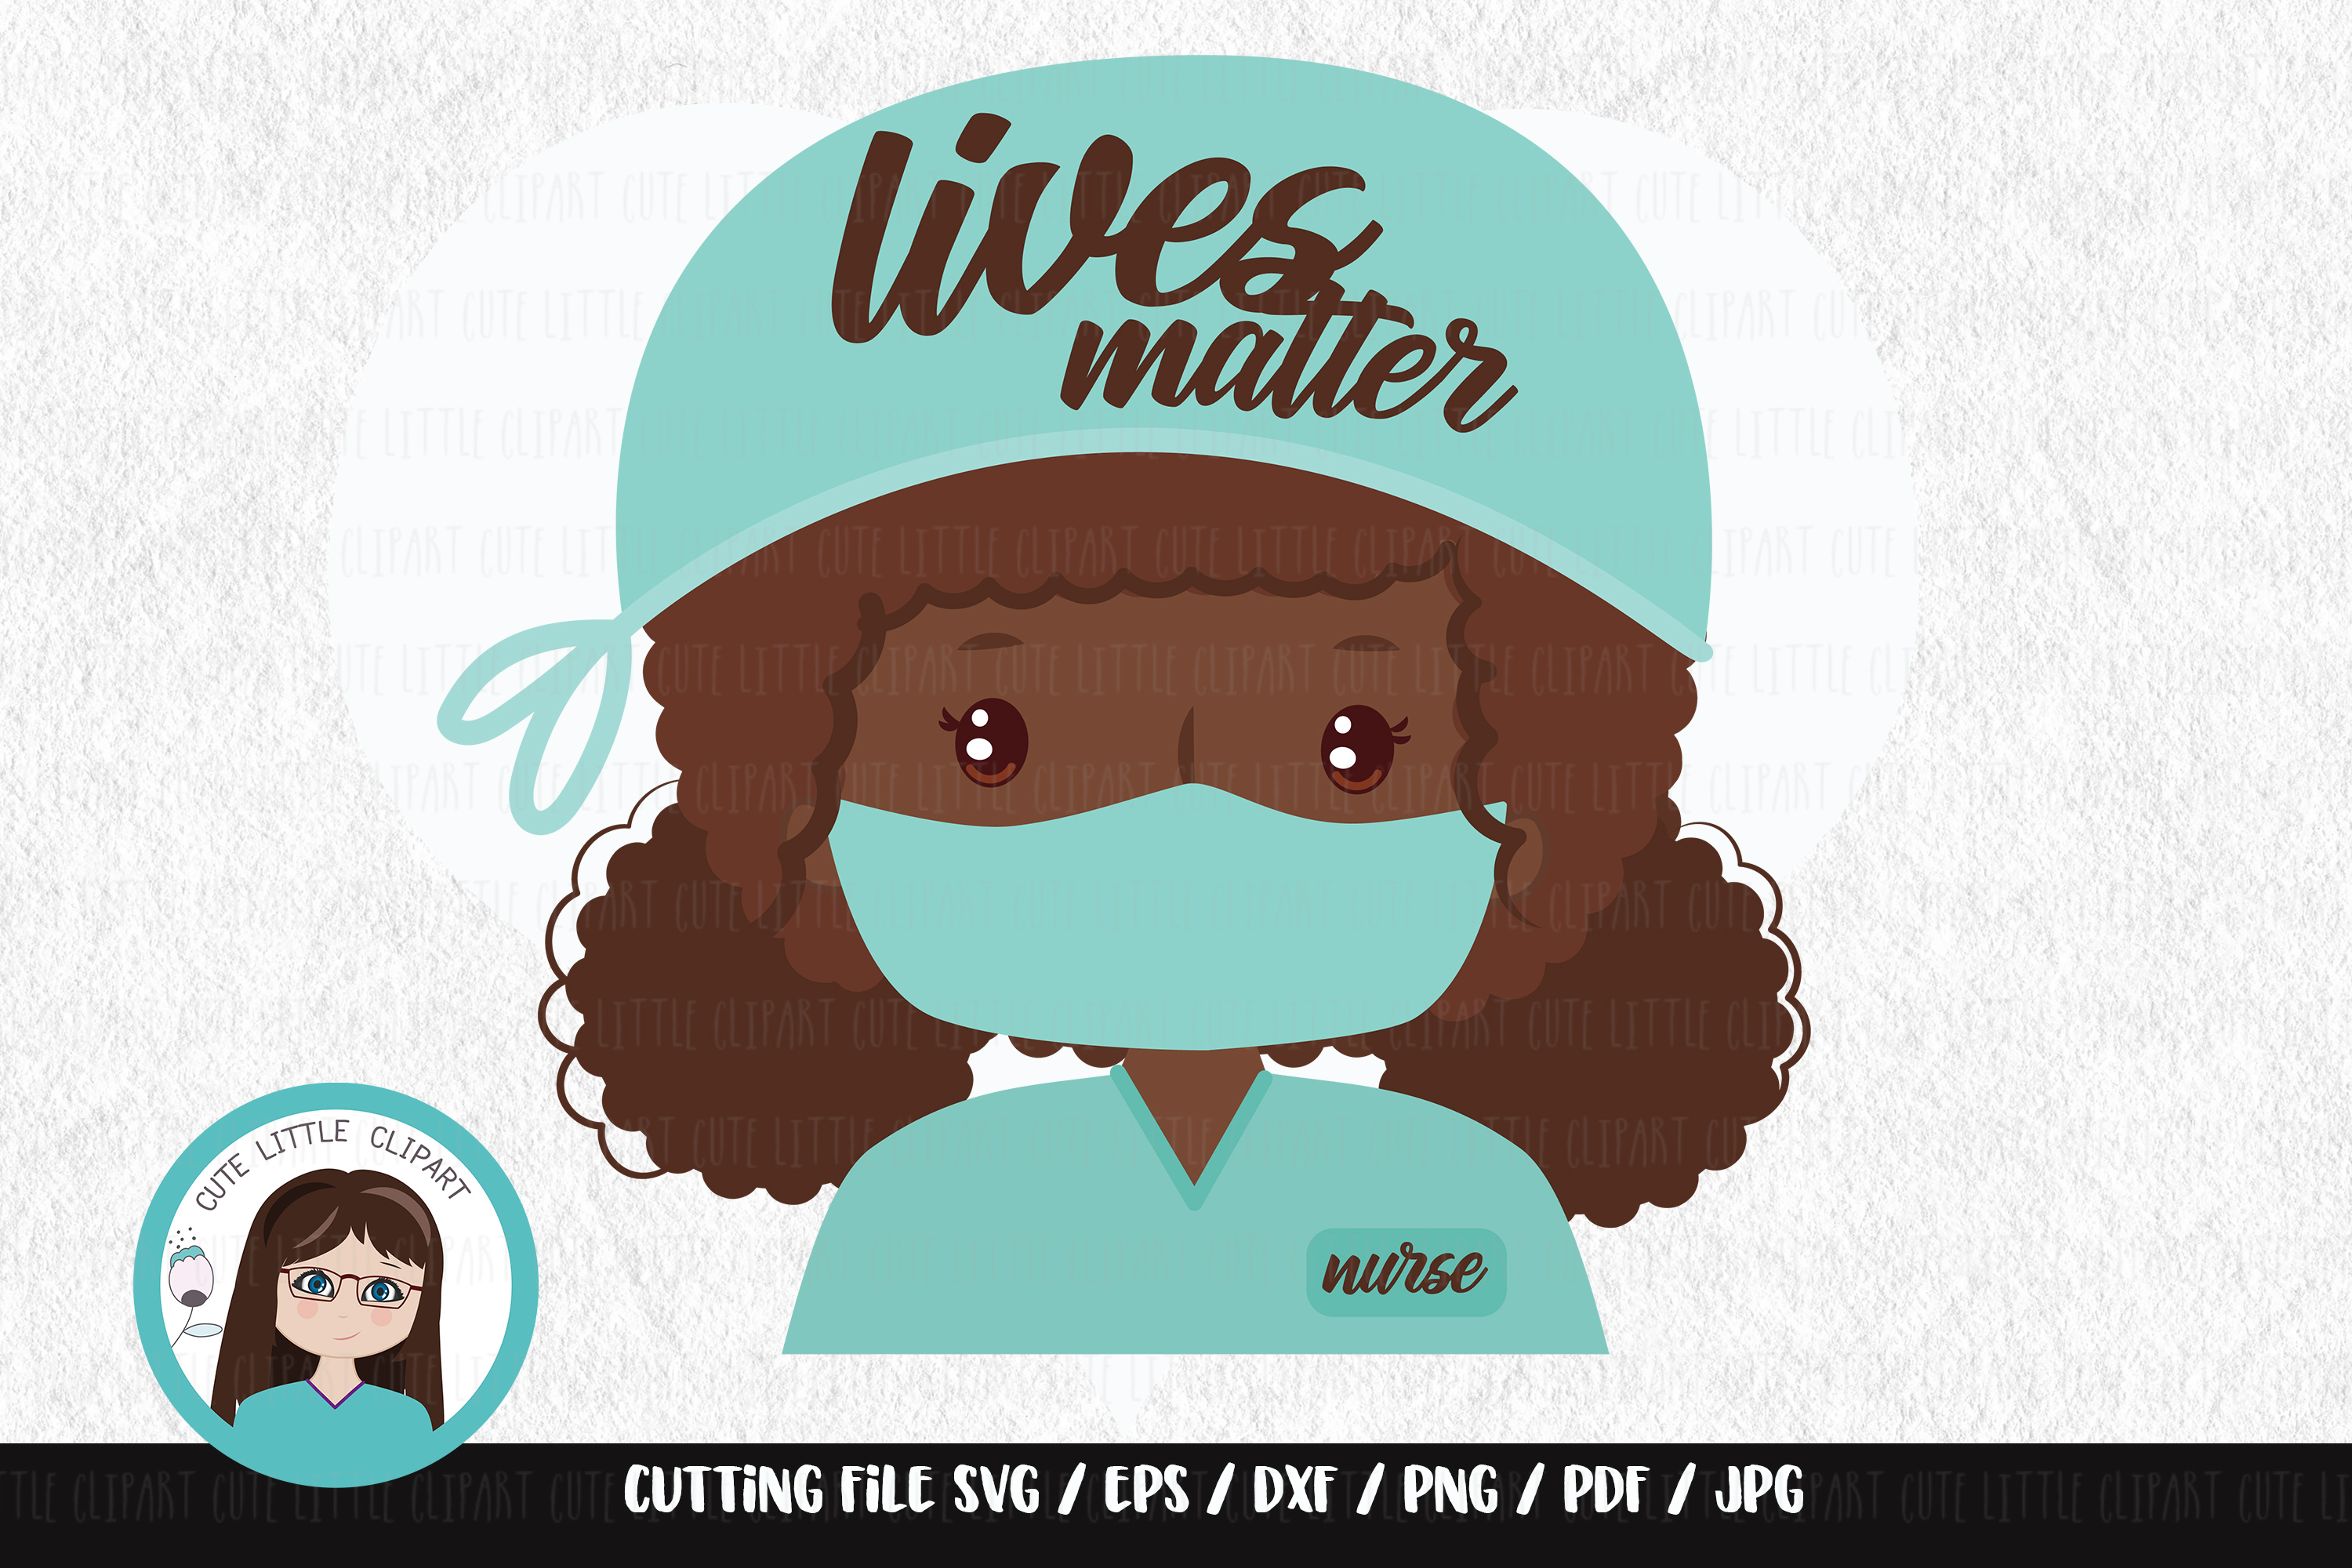 Download Free Lives Matter Nurse Graphic By Cutelittleclipart Creative Fabrica for Cricut Explore, Silhouette and other cutting machines.